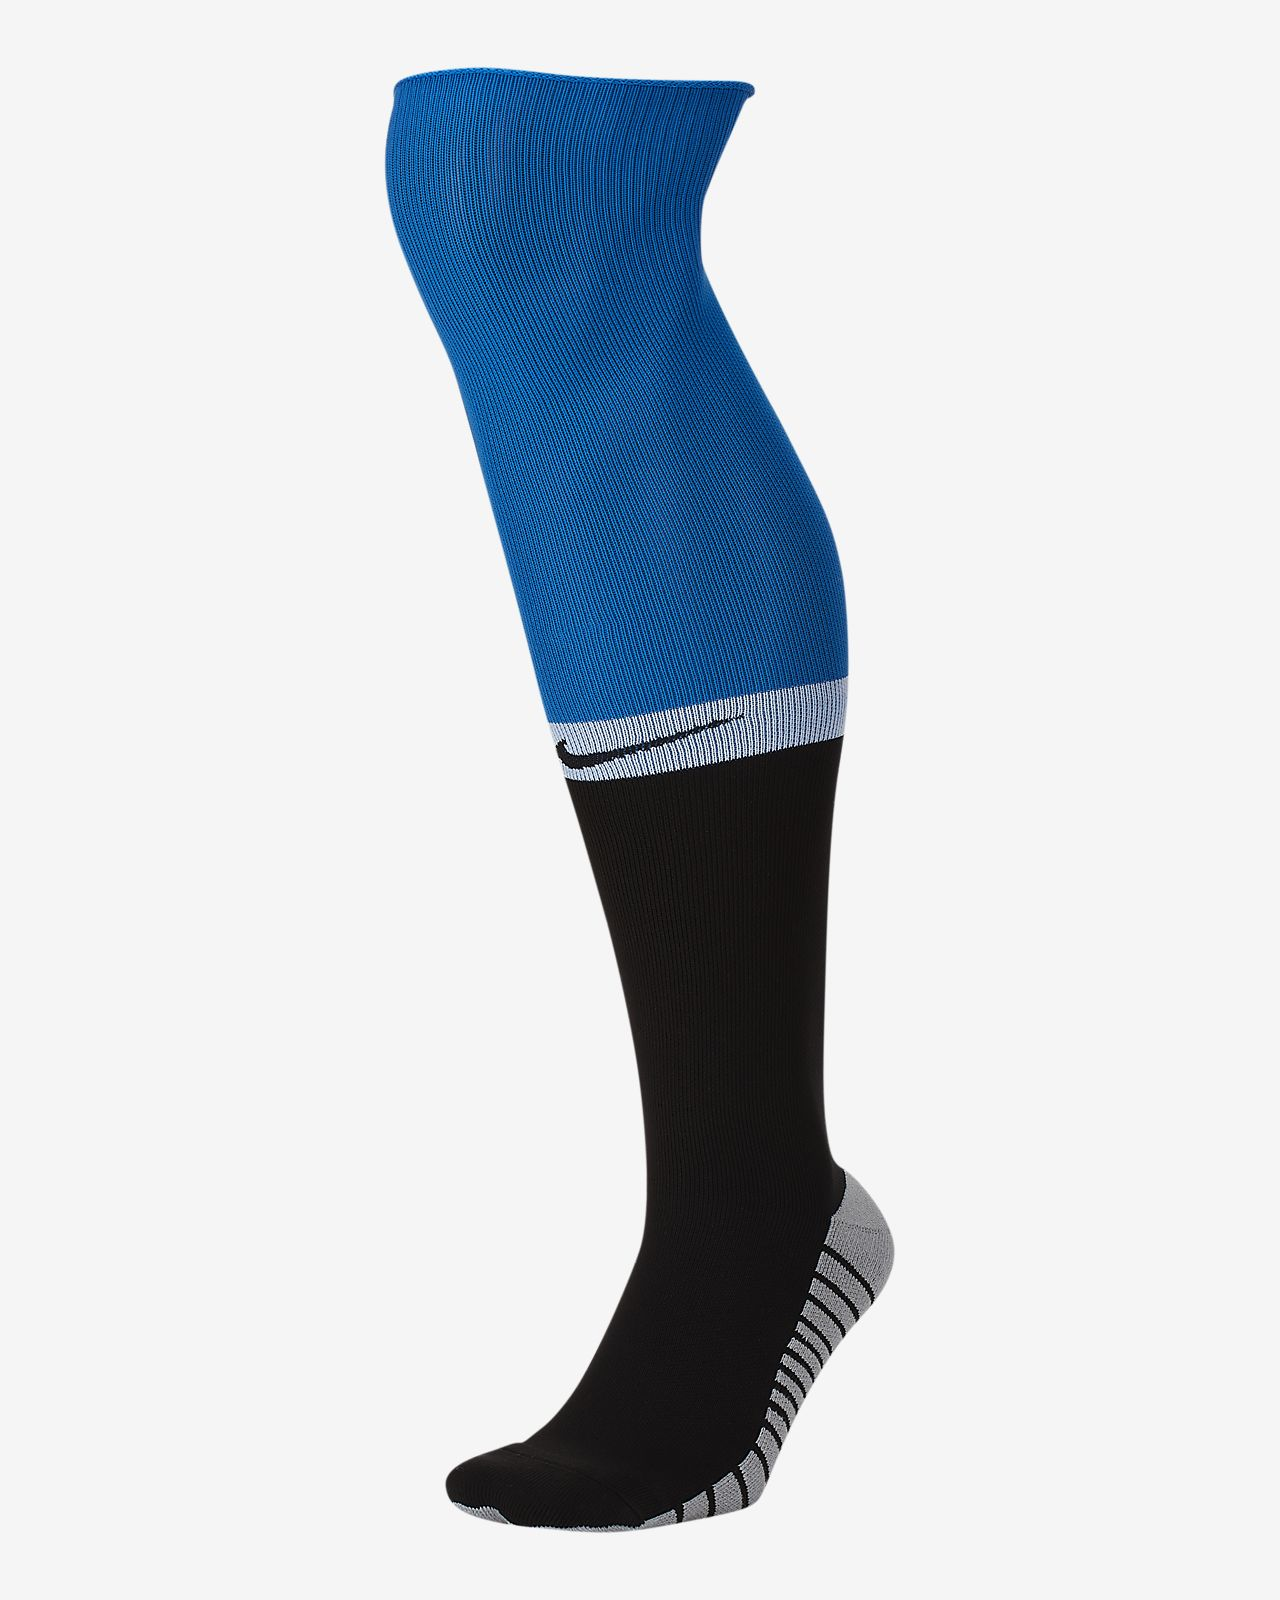 Inter Milan 2019/20 Stadium Home/Away Over-the-Calf Football Socks